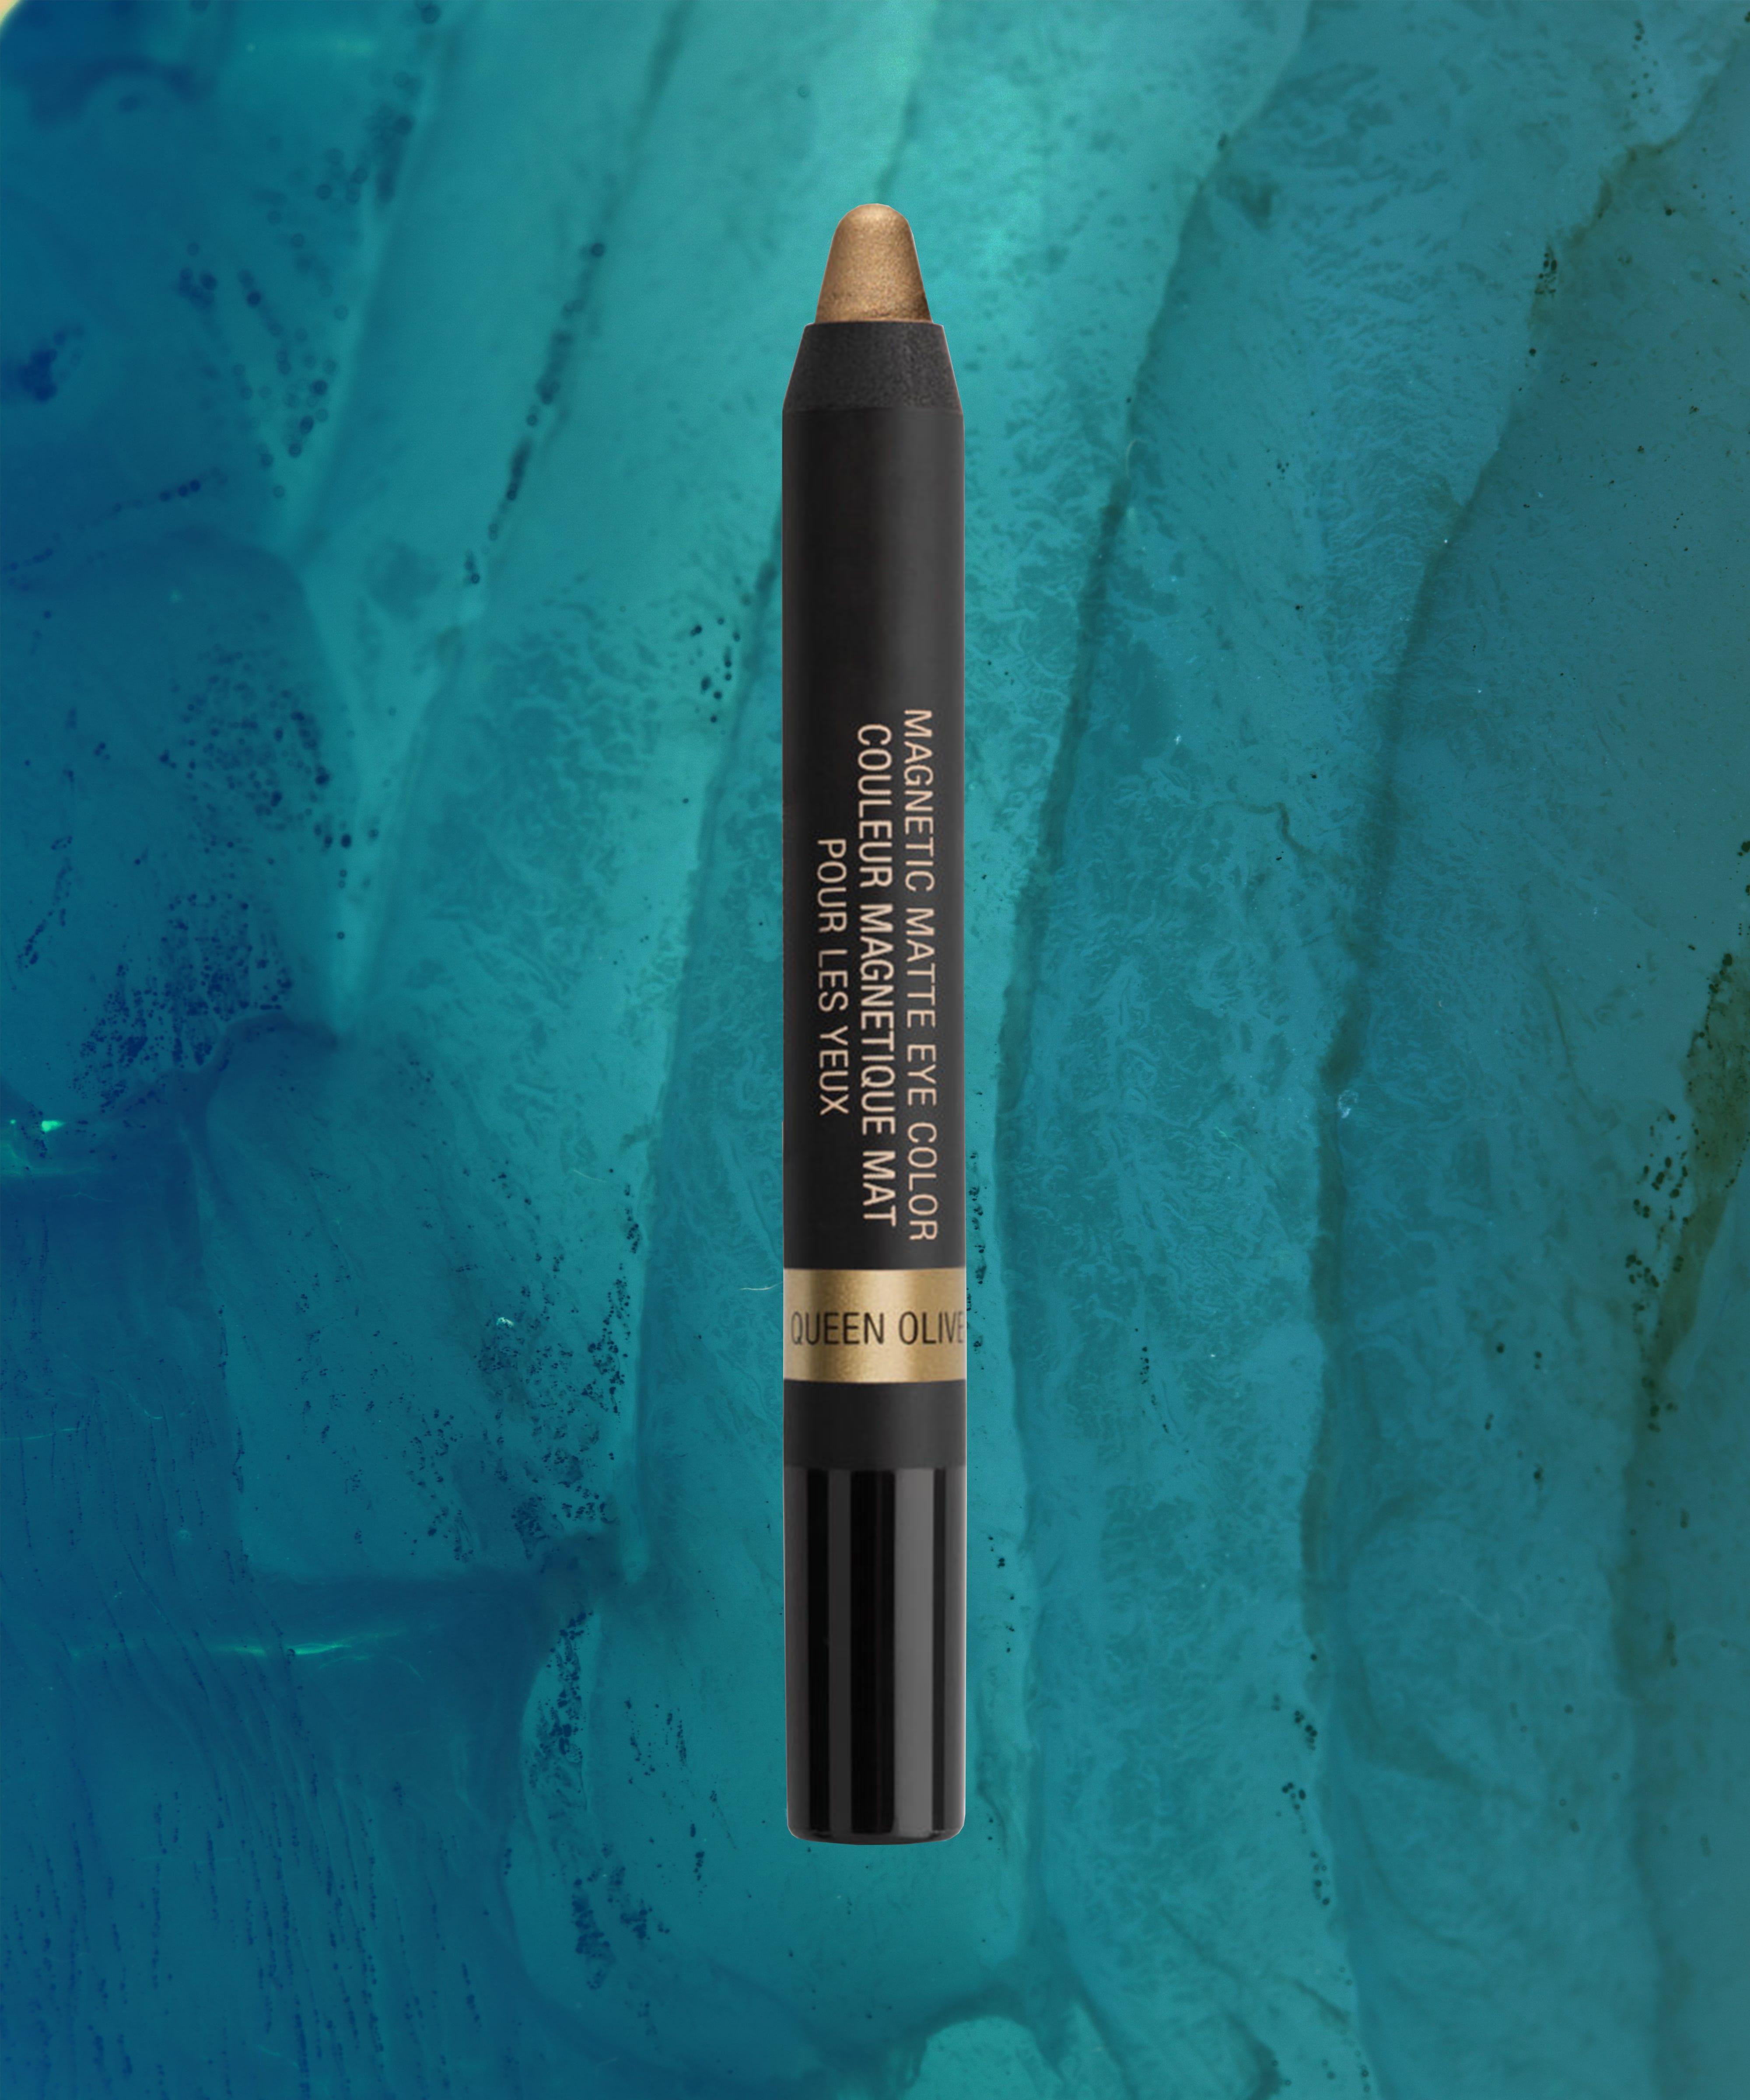 Crayola Colored Pencils Long Isi 24 The Best Lasting Makeup For Summer